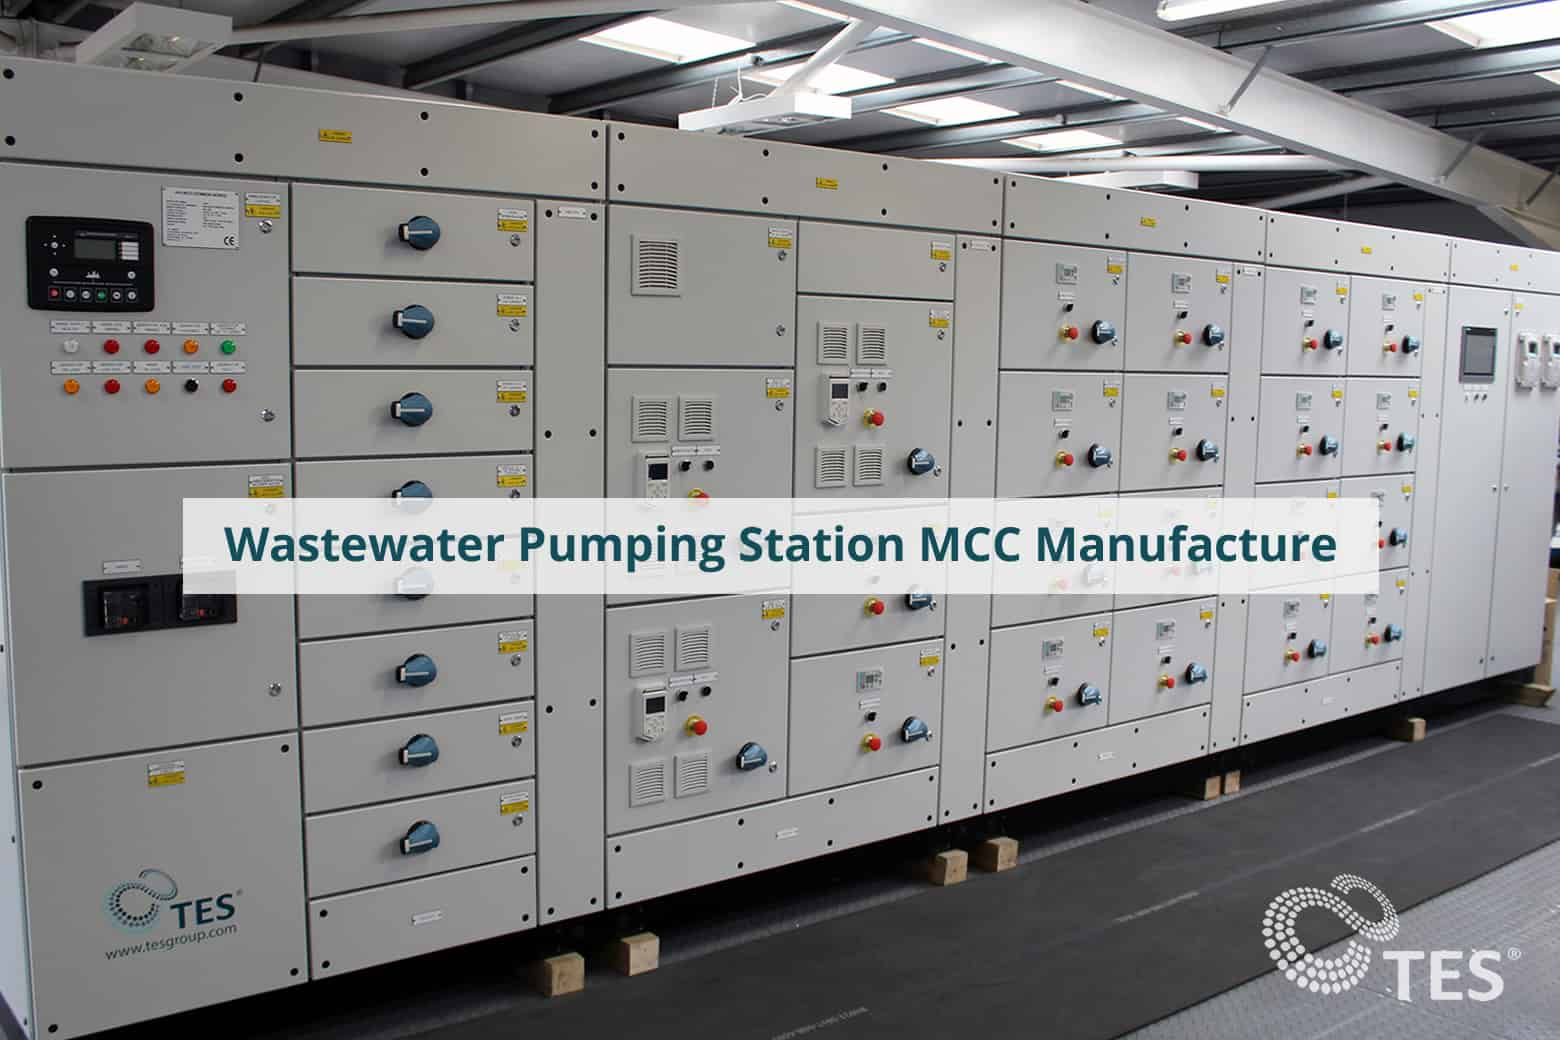 Wastewater Pumping Station MCC Manufacture